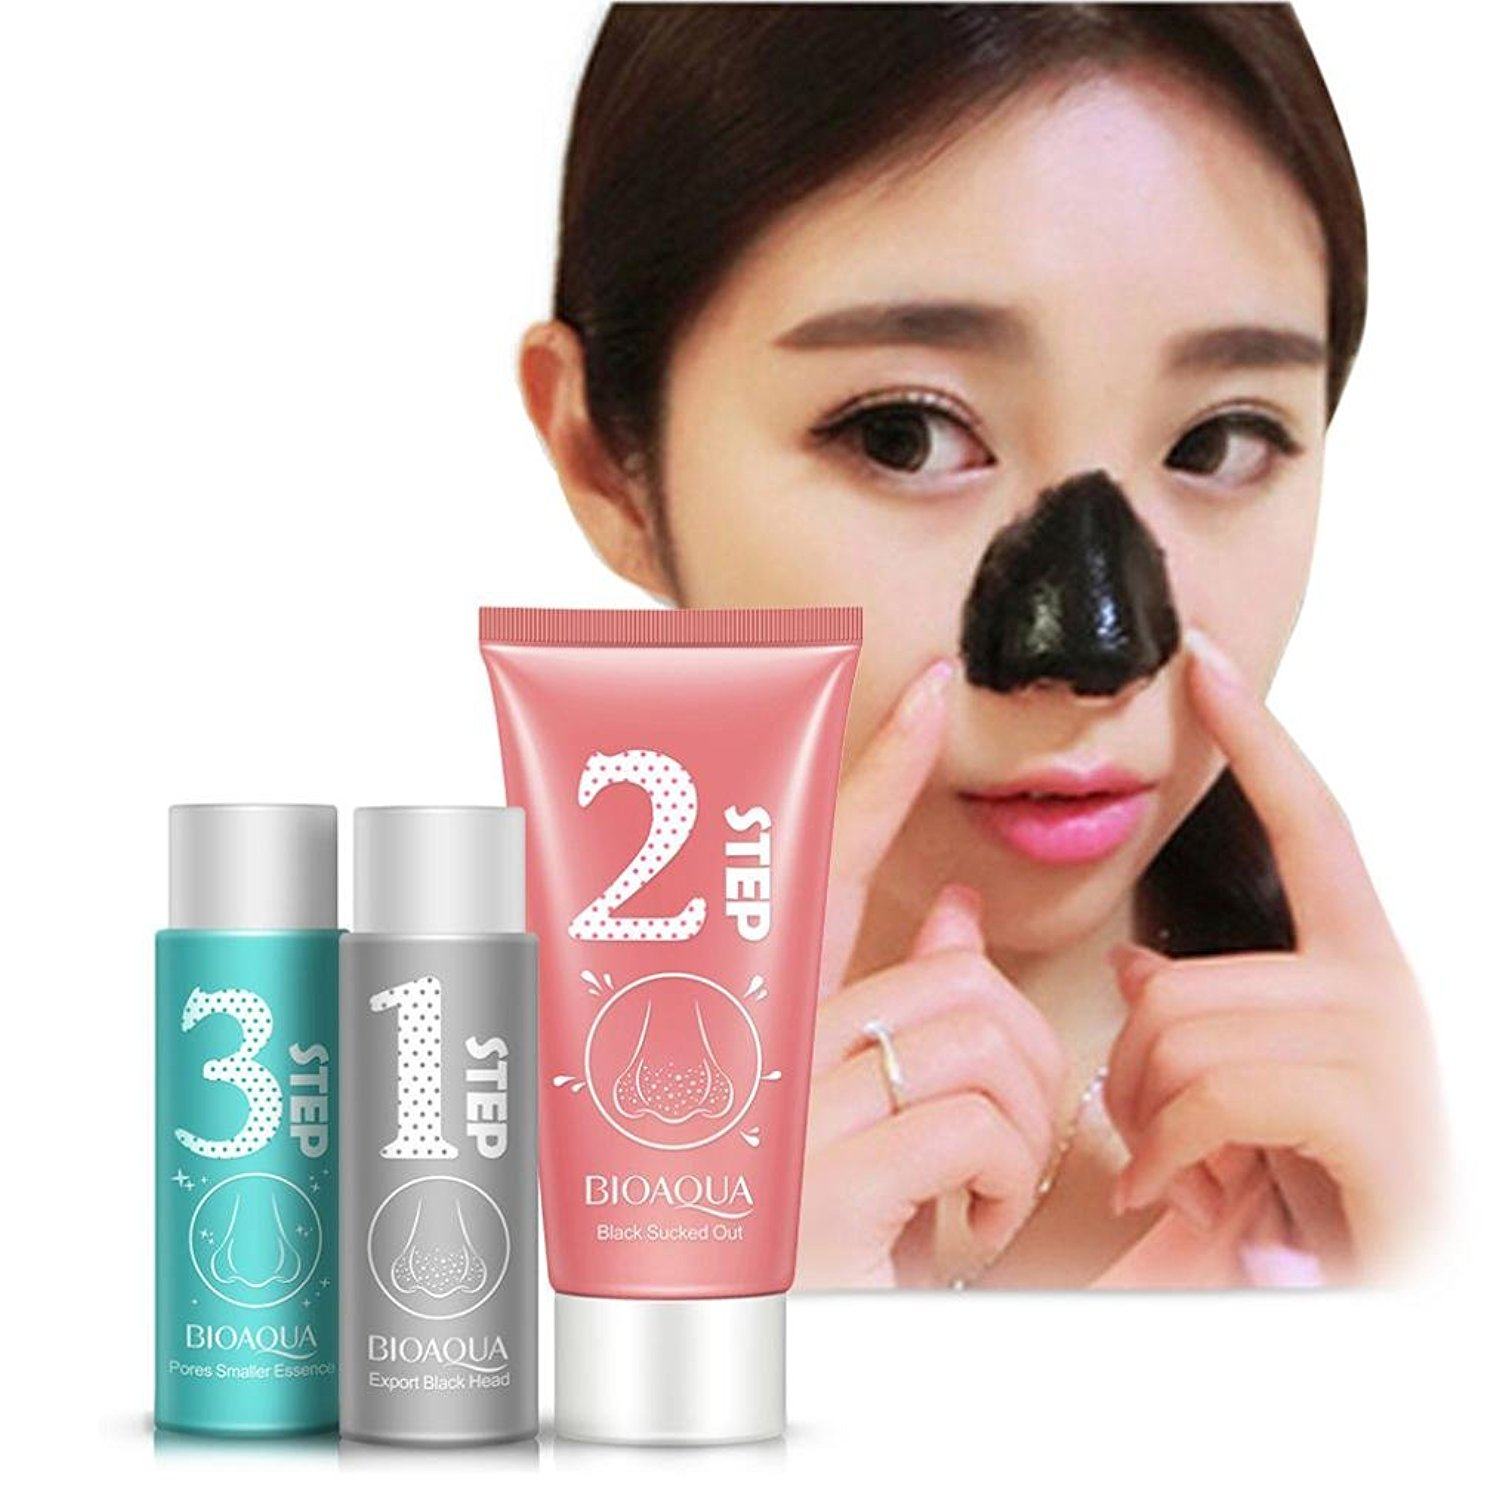 Ecosin Black Mud Deep Cleansing Pilaten Blackhead Remover Purifying Peel Face Mask Blackhead Remover Mask